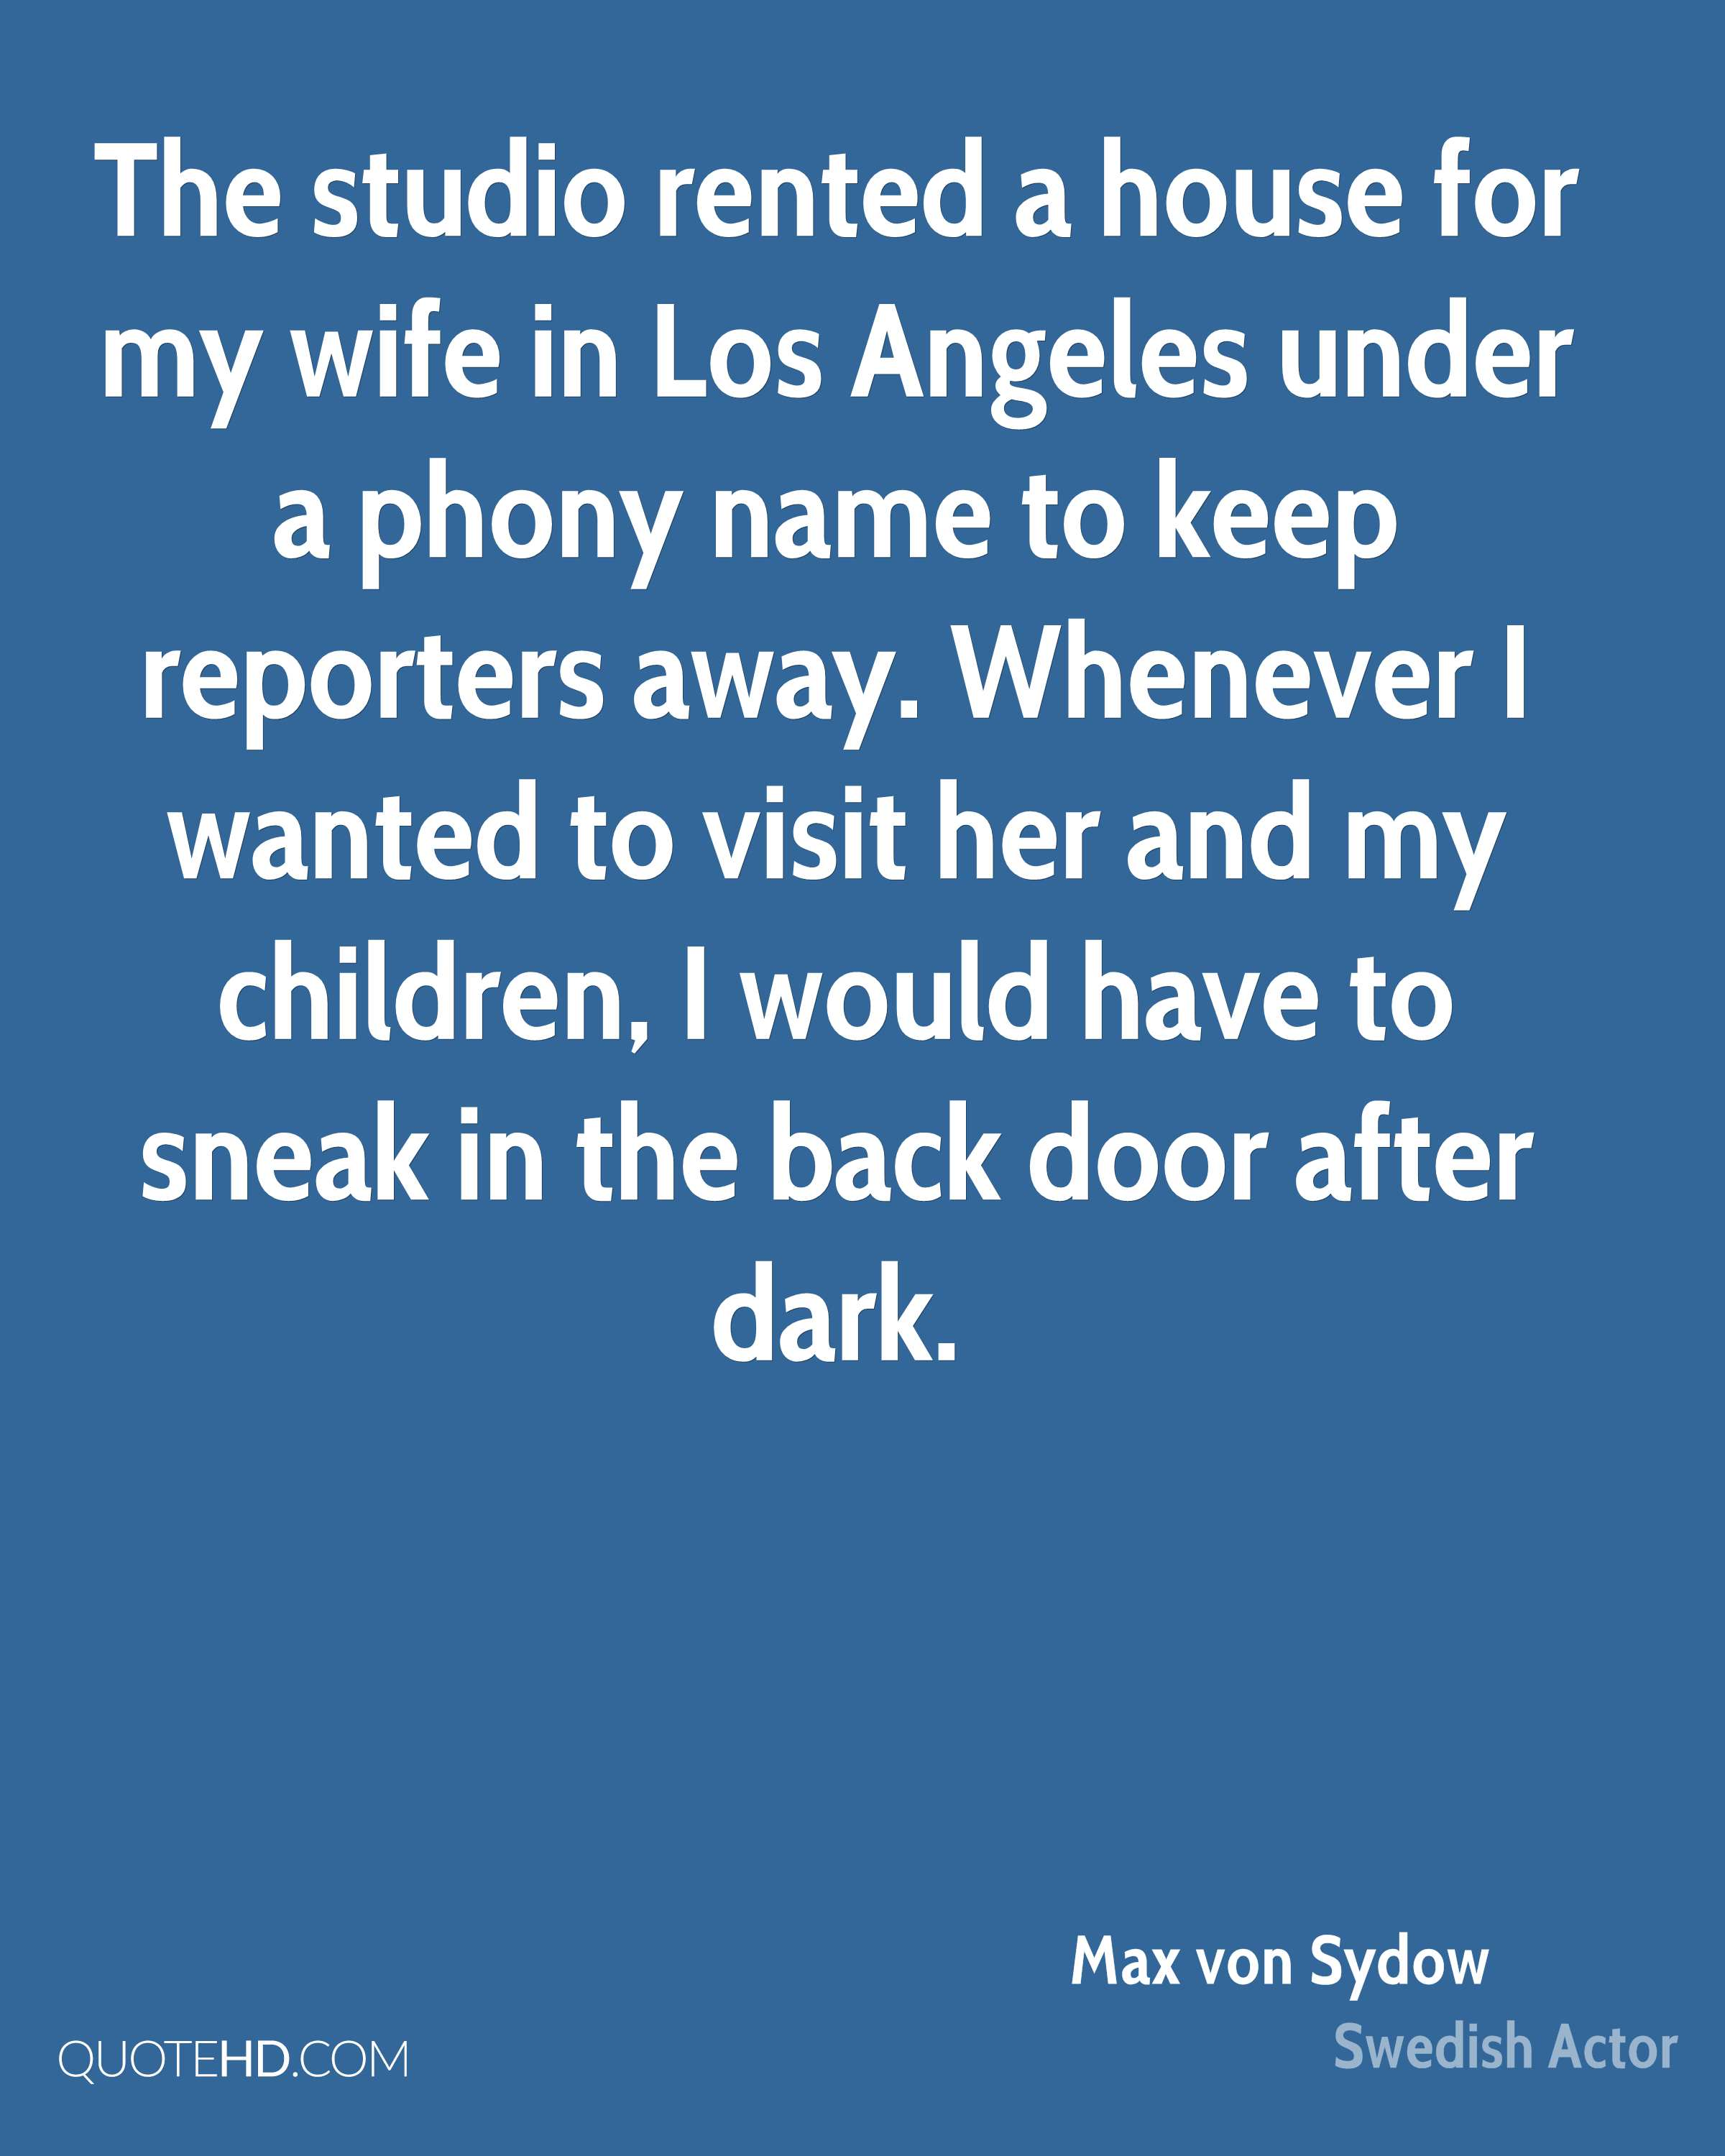 The studio rented a house for my wife in Los Angeles under a phony name to keep reporters away. Whenever I wanted to visit her and my children, I would have to sneak in the back door after dark.